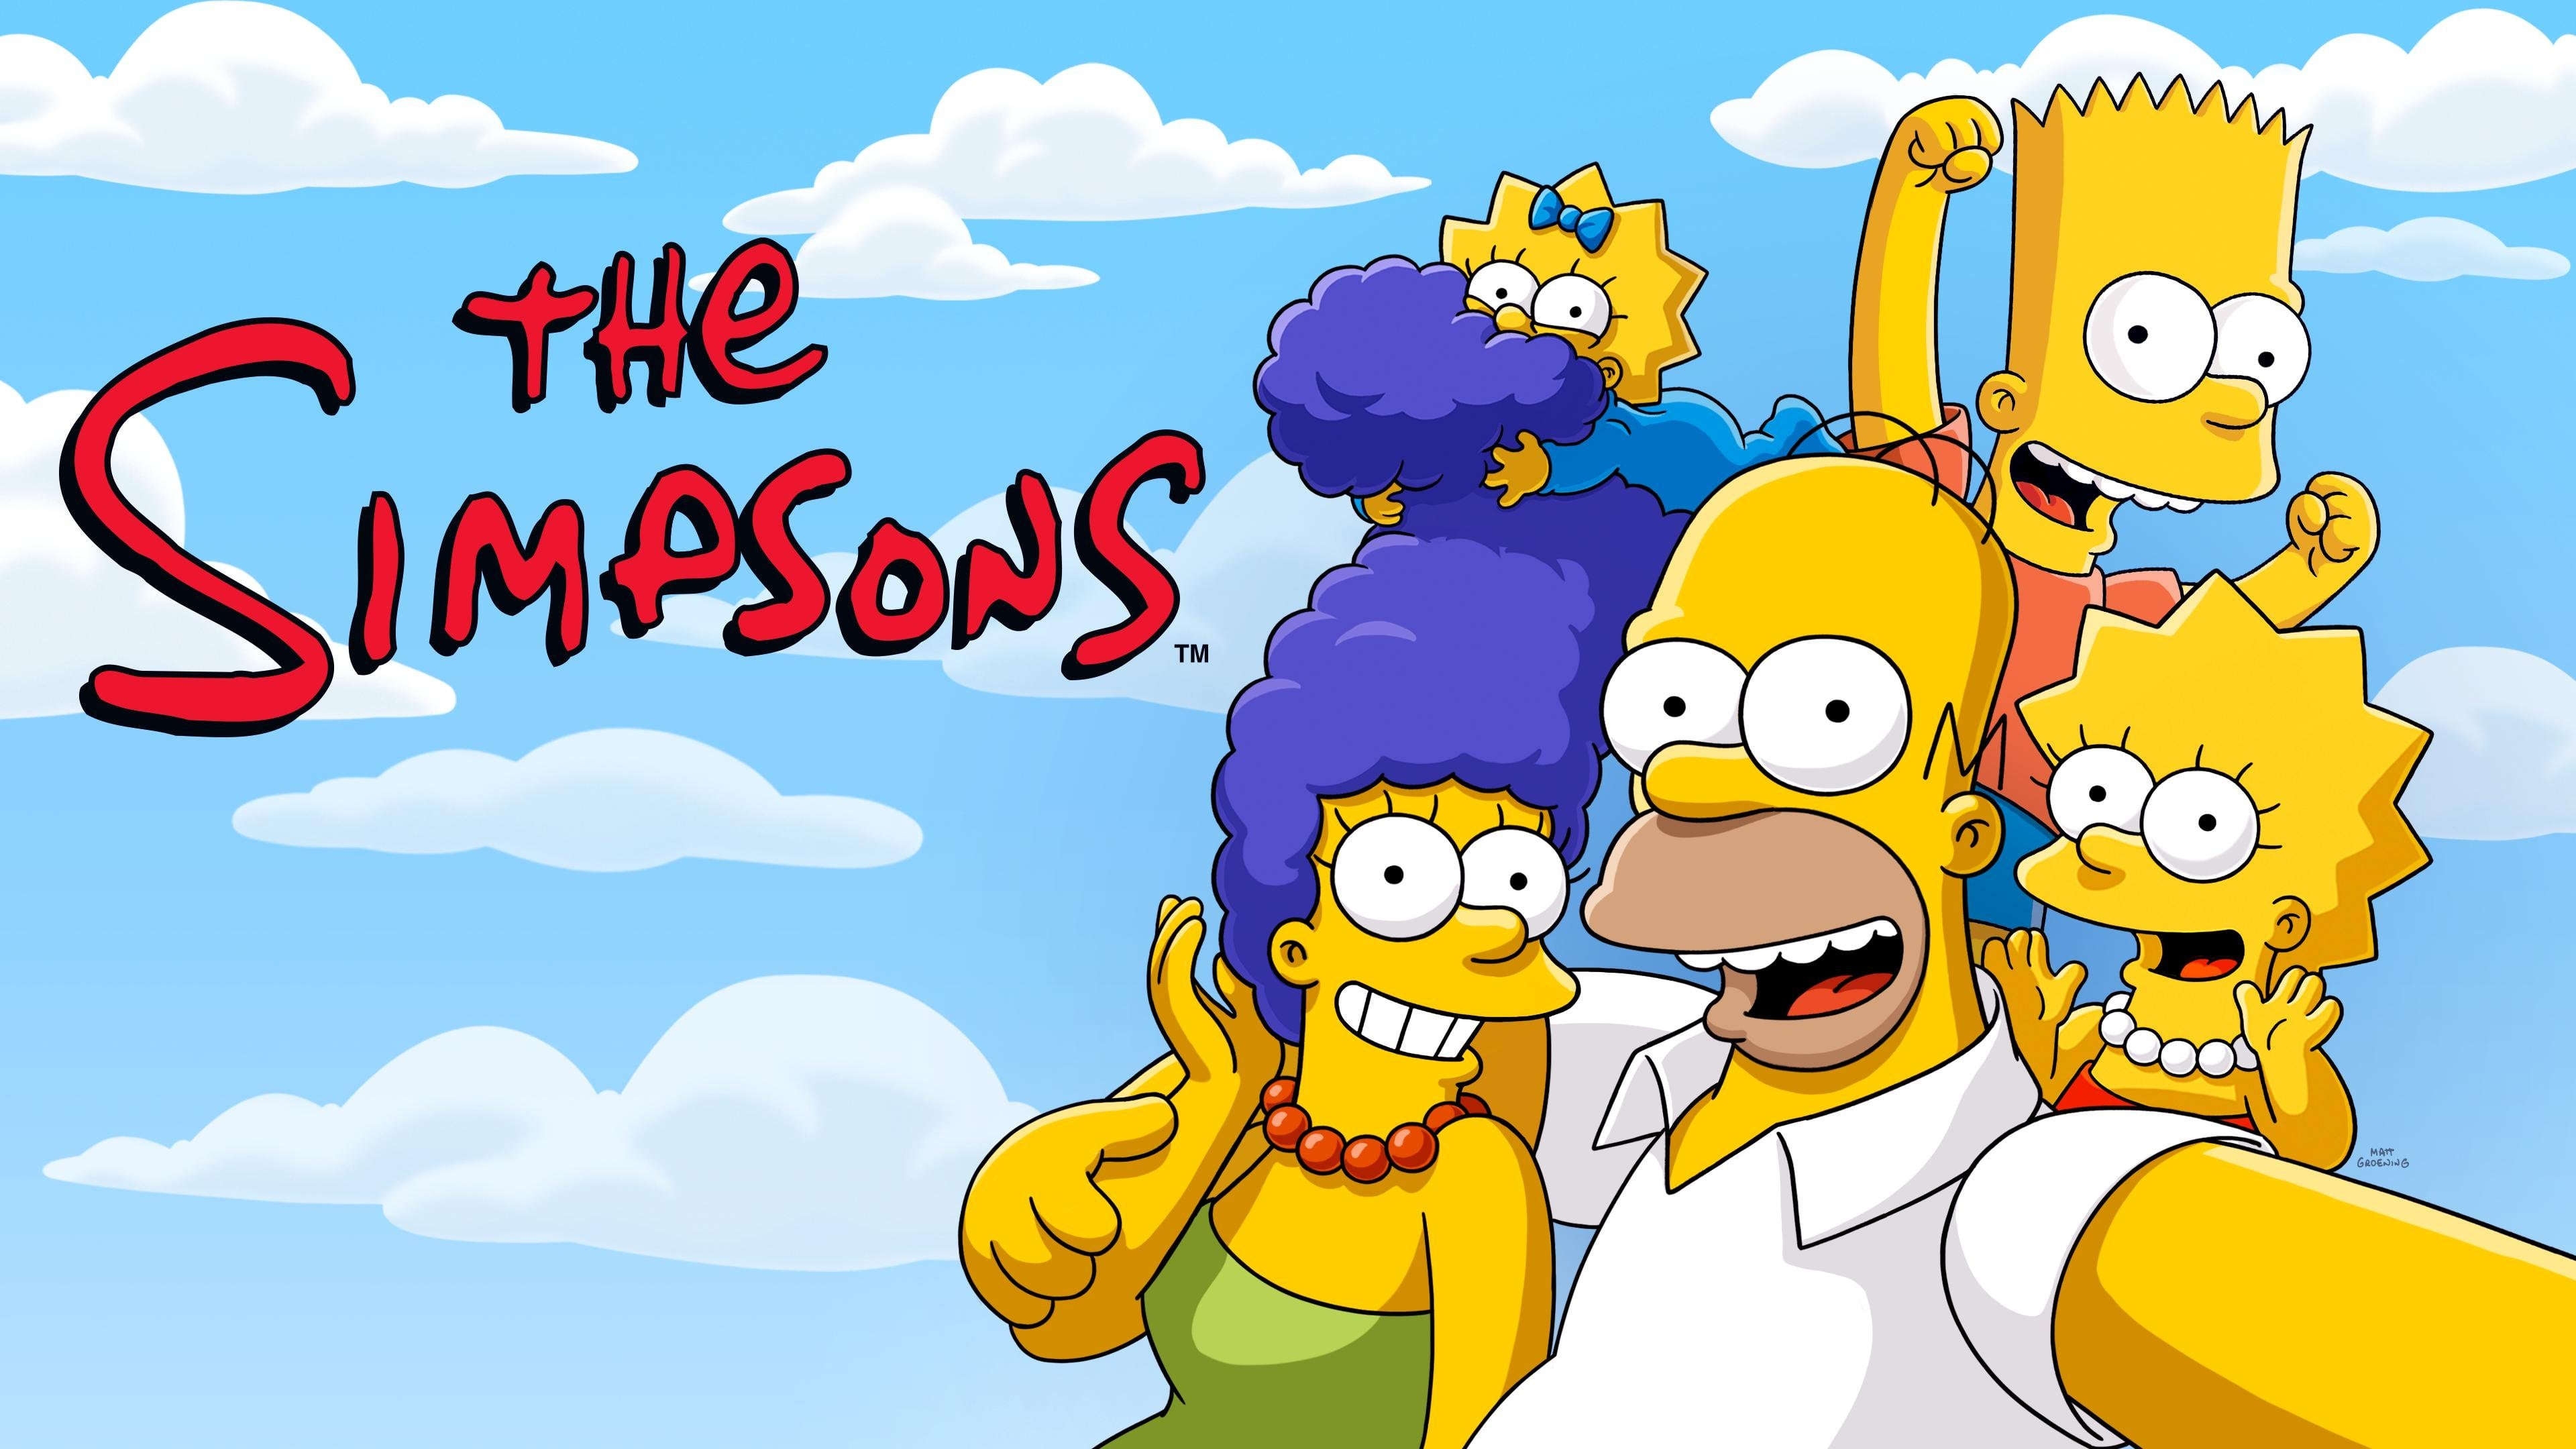 The Simpsons - Season 20